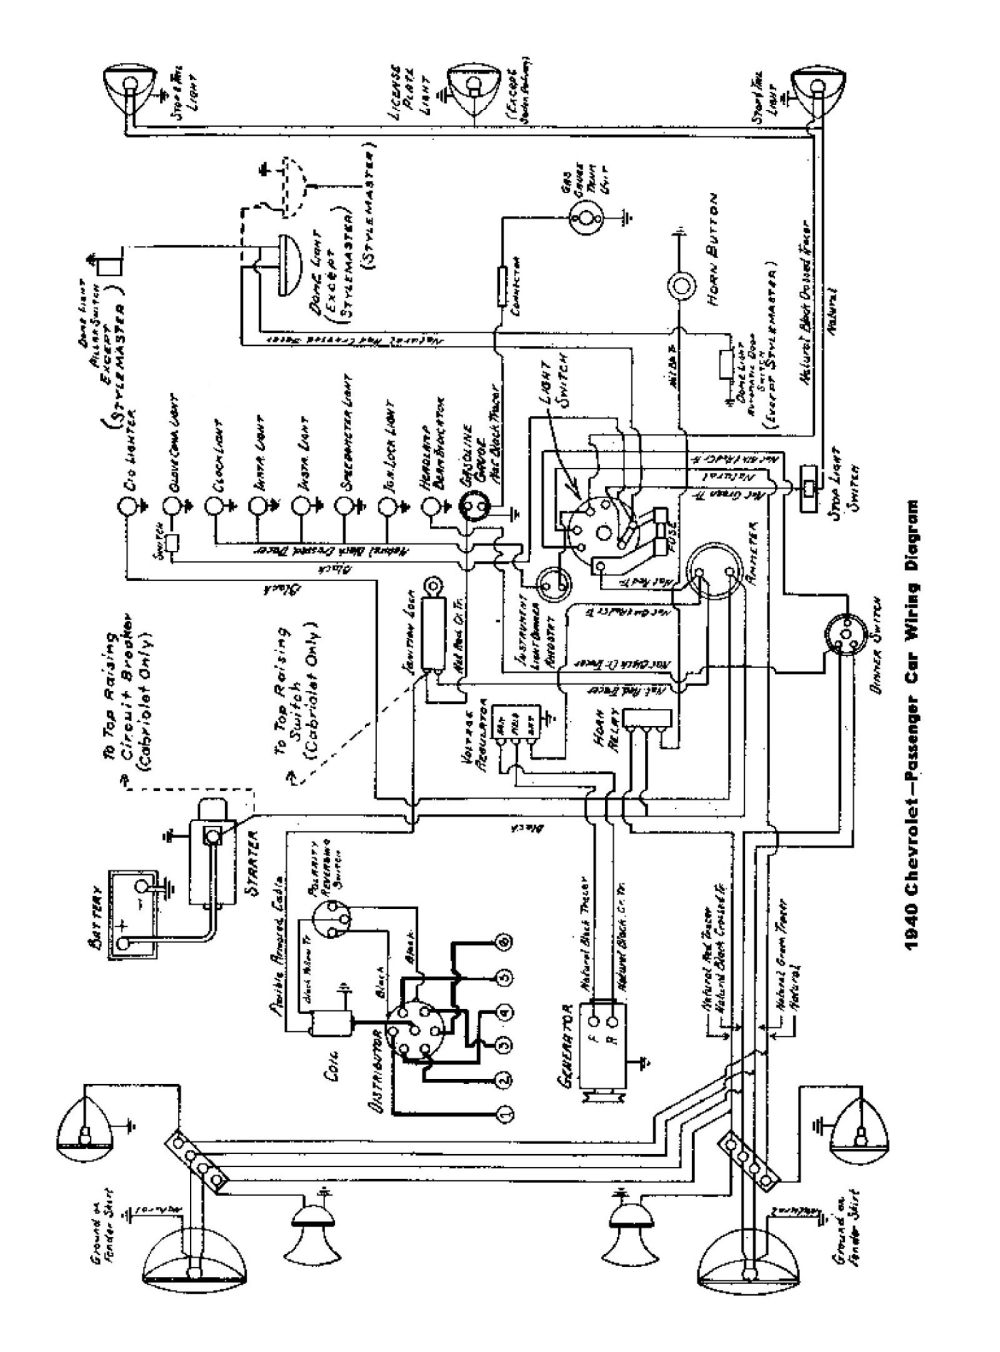 medium resolution of 1952 chevy pickup wiring diagram trusted wiring diagram chevy truck wiring diagram 1952 chevy wiring diagram